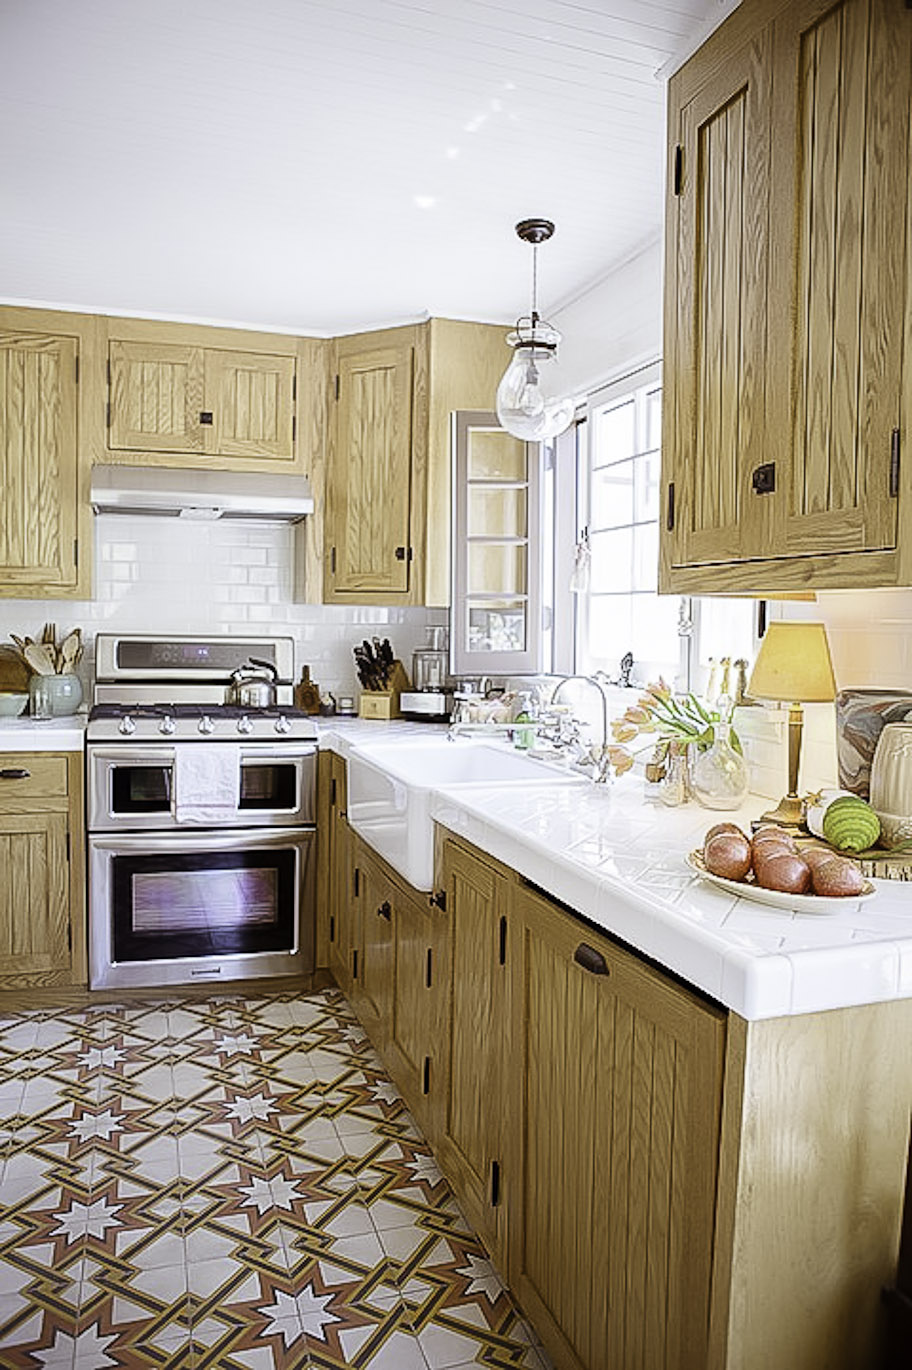 Designer kitchen remodels with high end appliances, countertops and farm style sink